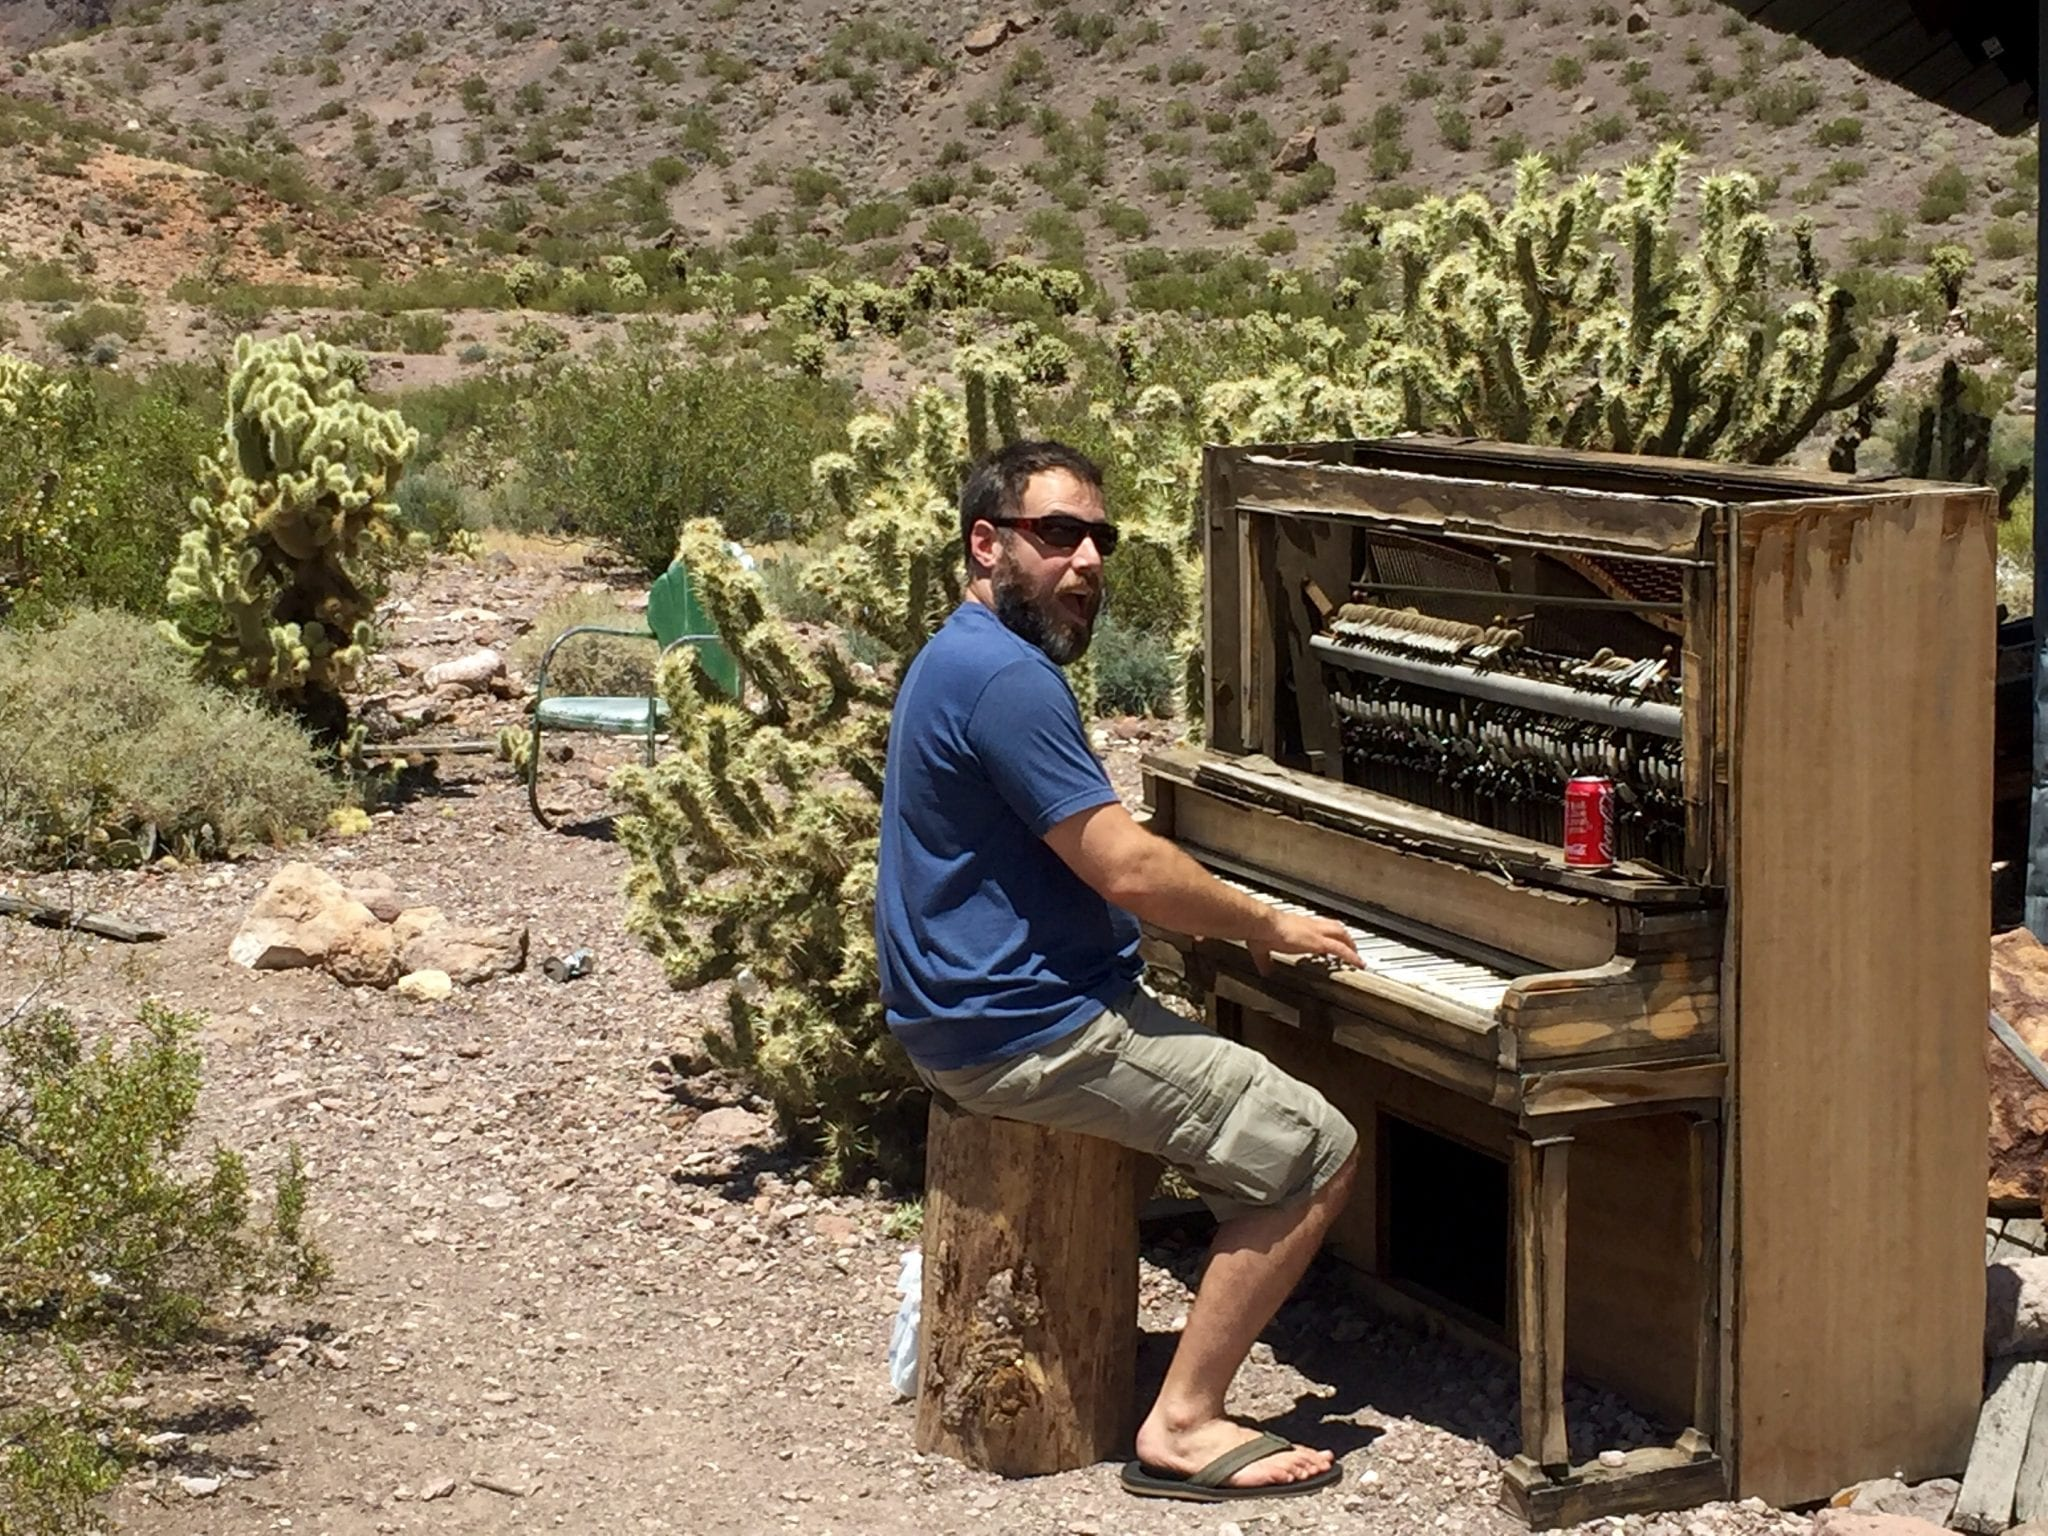 Player Piano El Dorado Canyon